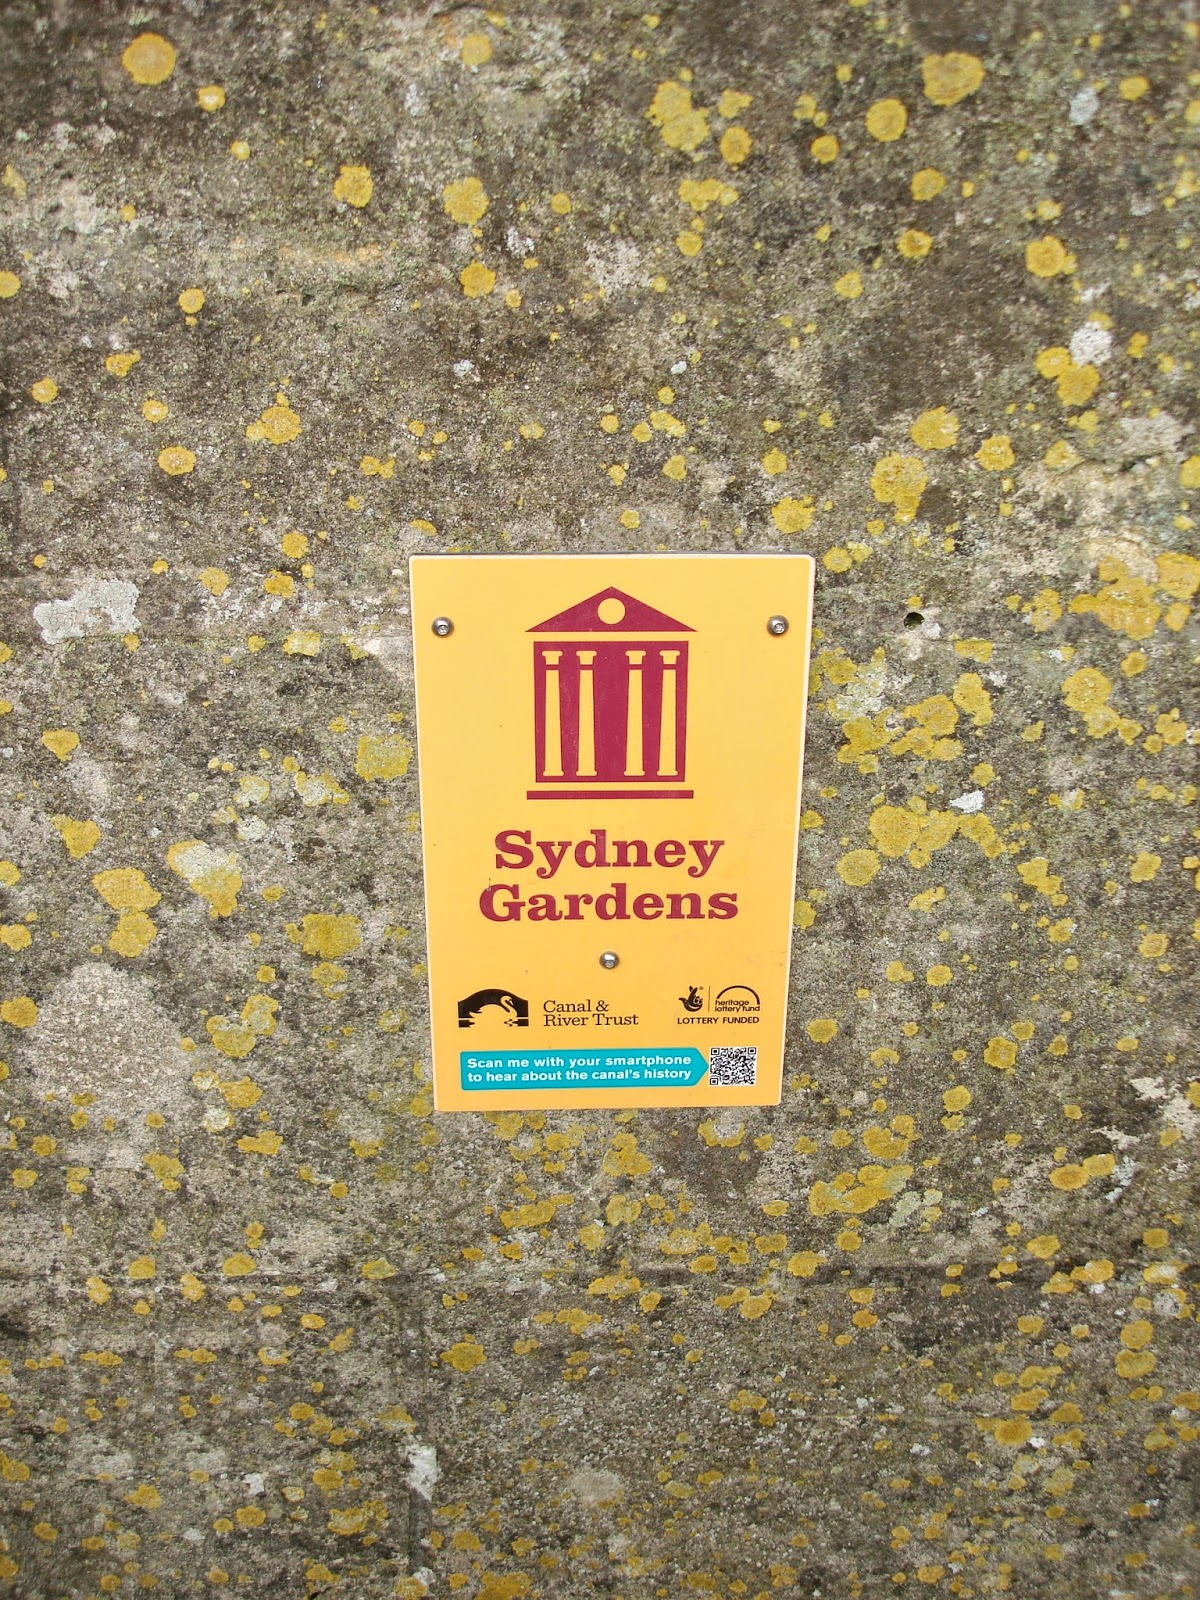 Sydney Gardens sign, Bath, England